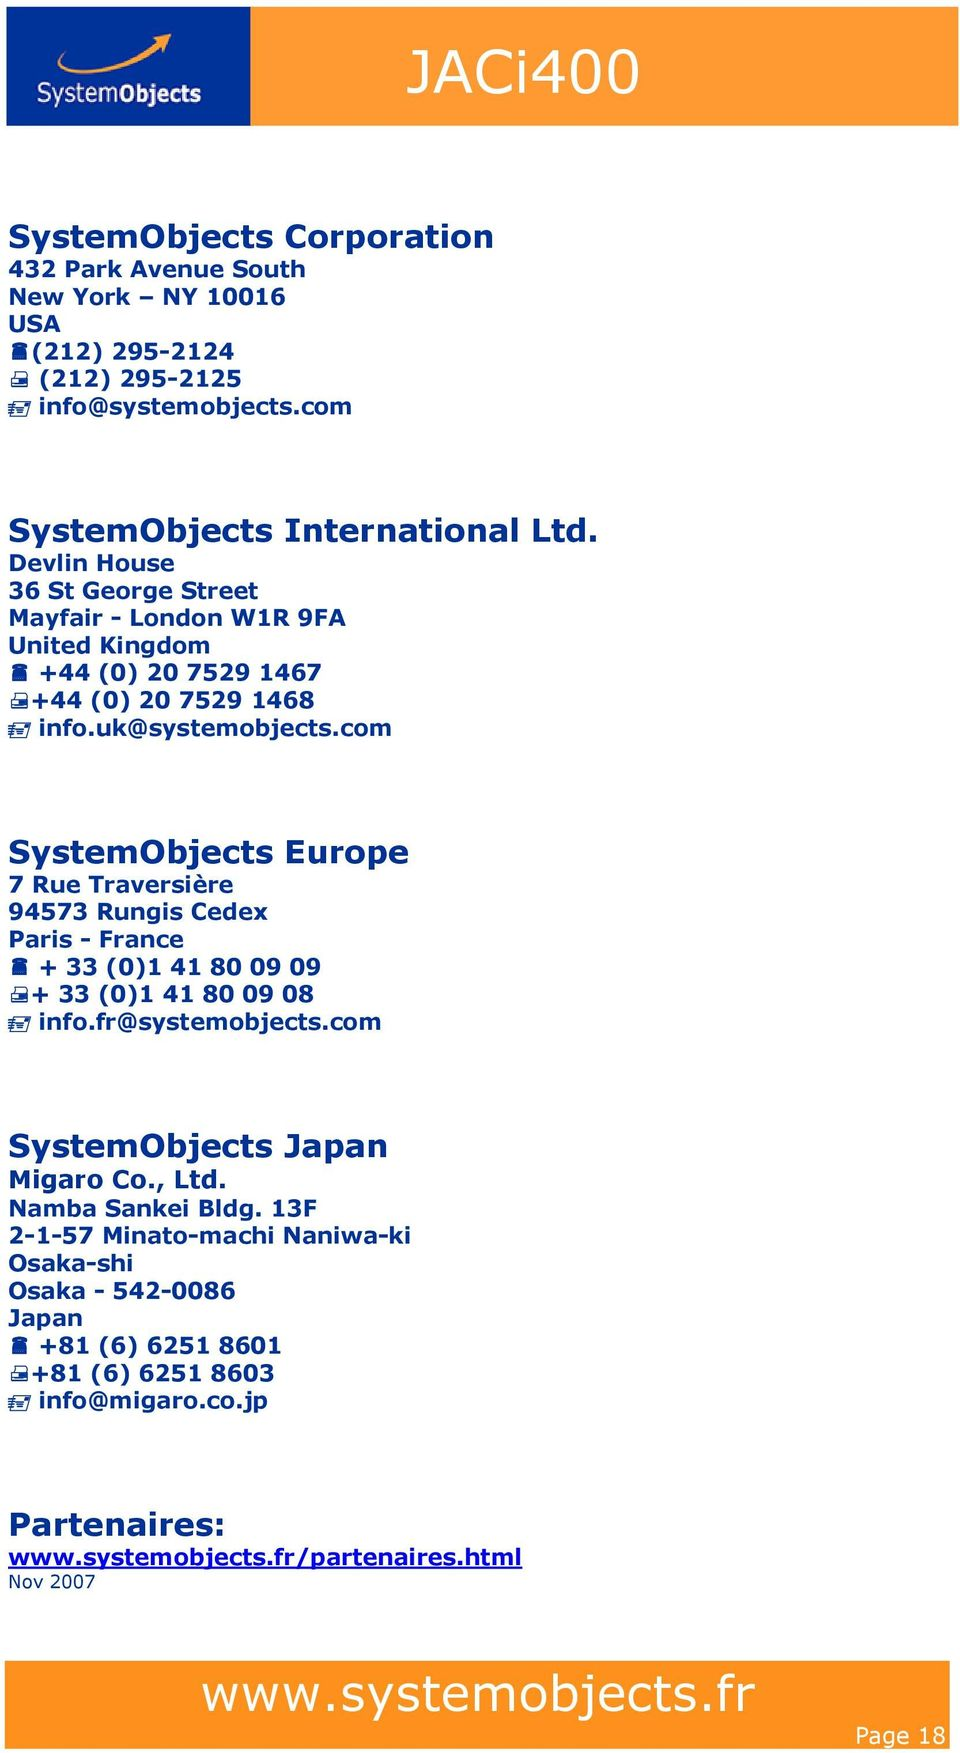 com SystemObjects Europe 7 Rue Traversière 94573 Rungis Cedex Paris - France + 33 (0)1 41 80 09 09 + 33 (0)1 41 80 09 08 info.fr@systemobjects.